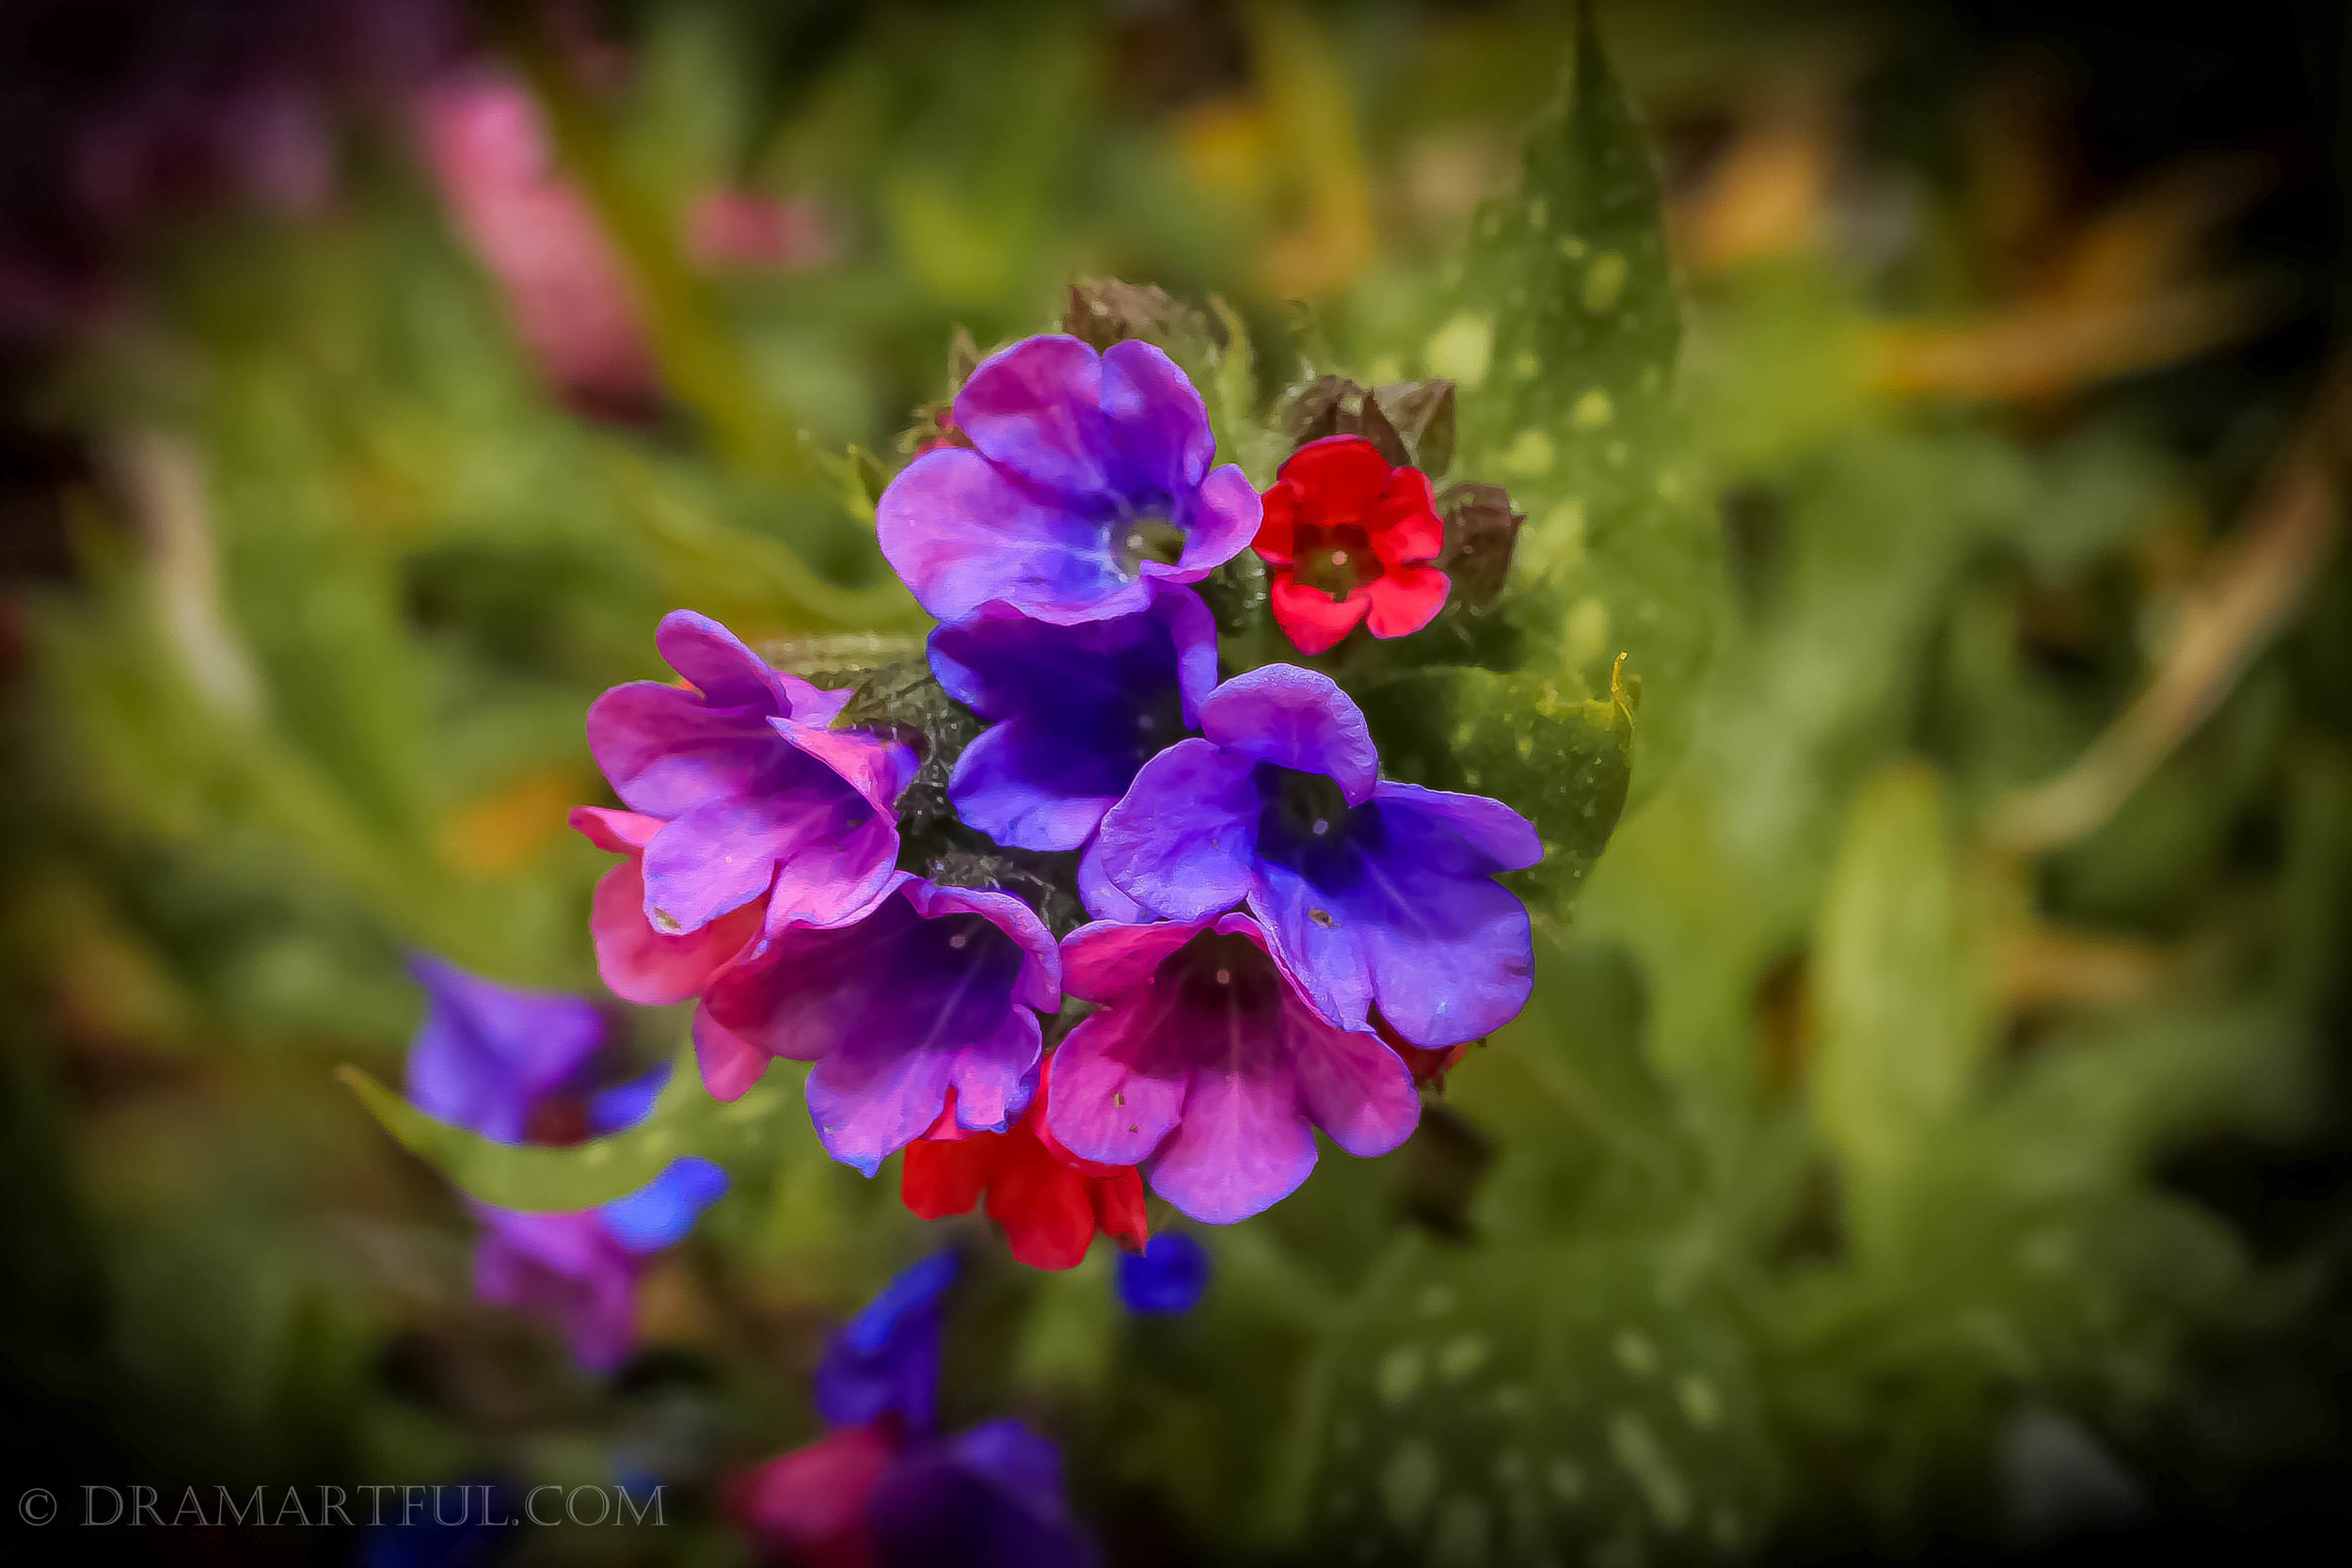 """Virginia bluebells are a special bunch. It was my favorite plant growing up. I was drawn to its vibrant pinks and purples peeking through the busy shrubbery.They are proudly glowing as a centerpiece in my little patch of dirt I call """"garden."""" Really, it's pathetic but some hardier stuff thrives even in heavy clay soil...when it doesn't get annihilated by the local wildlife =)"""